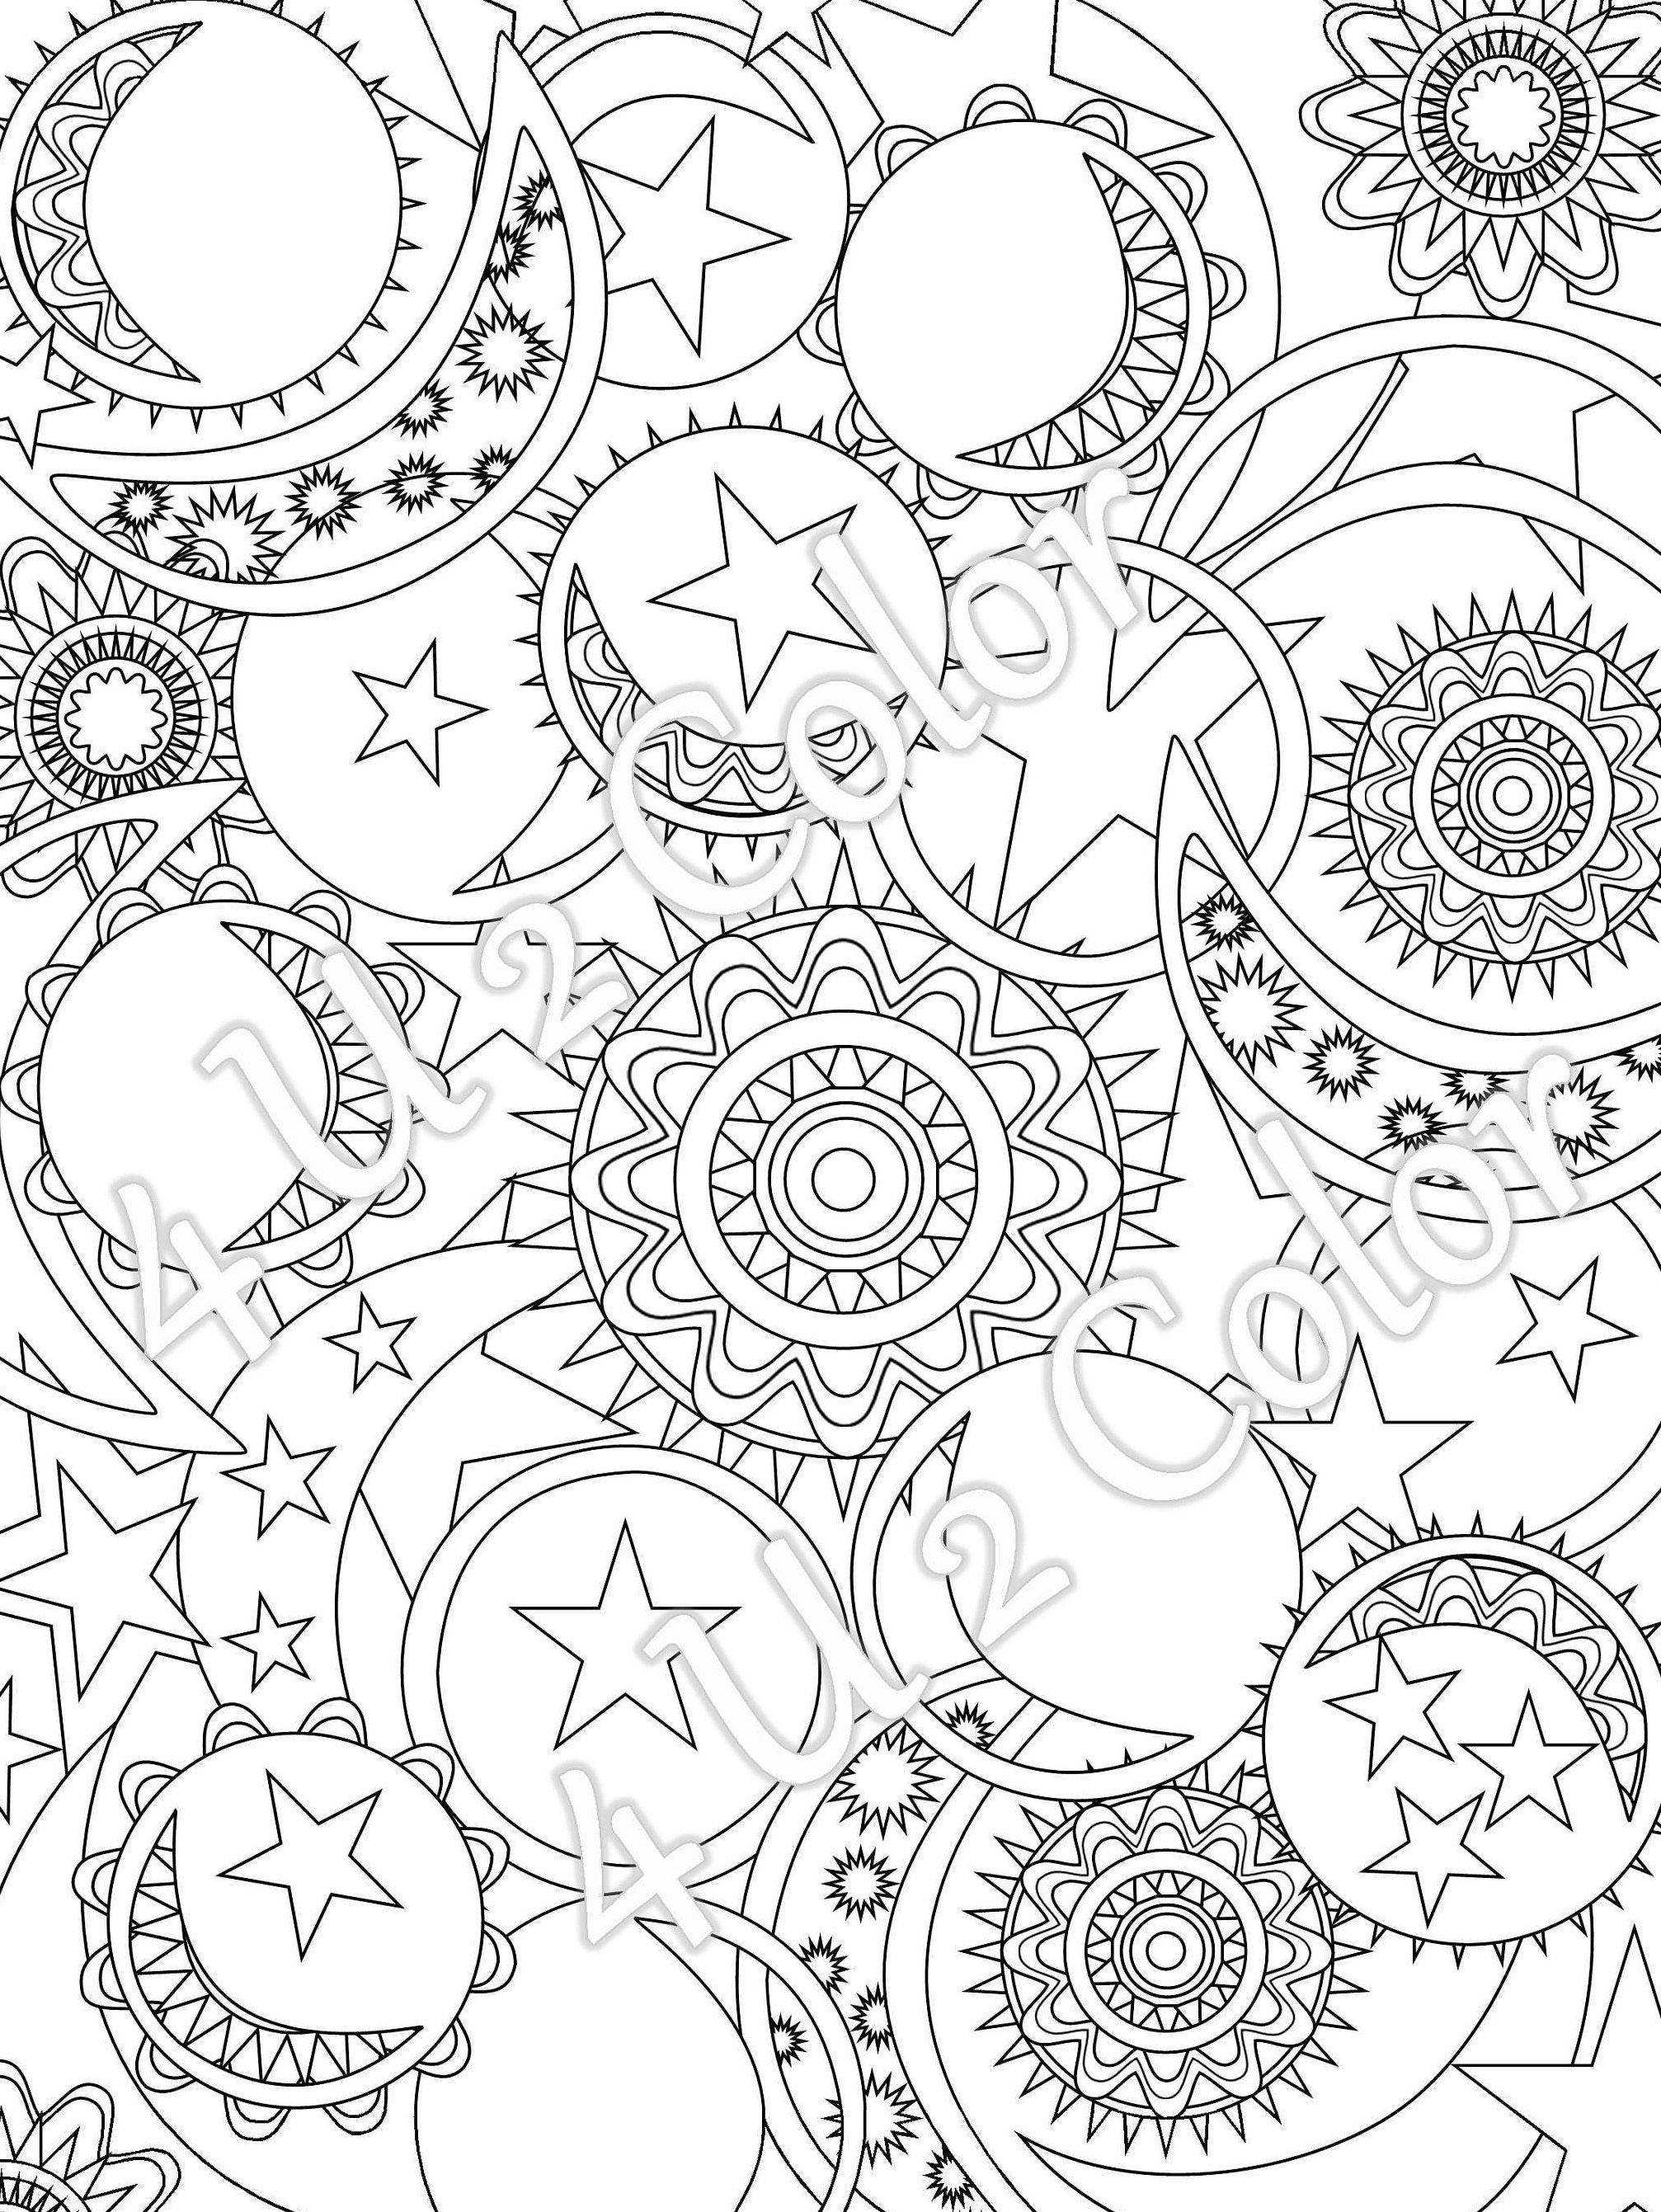 Sun Moon Stars 1 Coloring Page Sun Moon Stars Etsy In 2021 Star Coloring Pages Moon Coloring Pages Mandala Coloring Pages